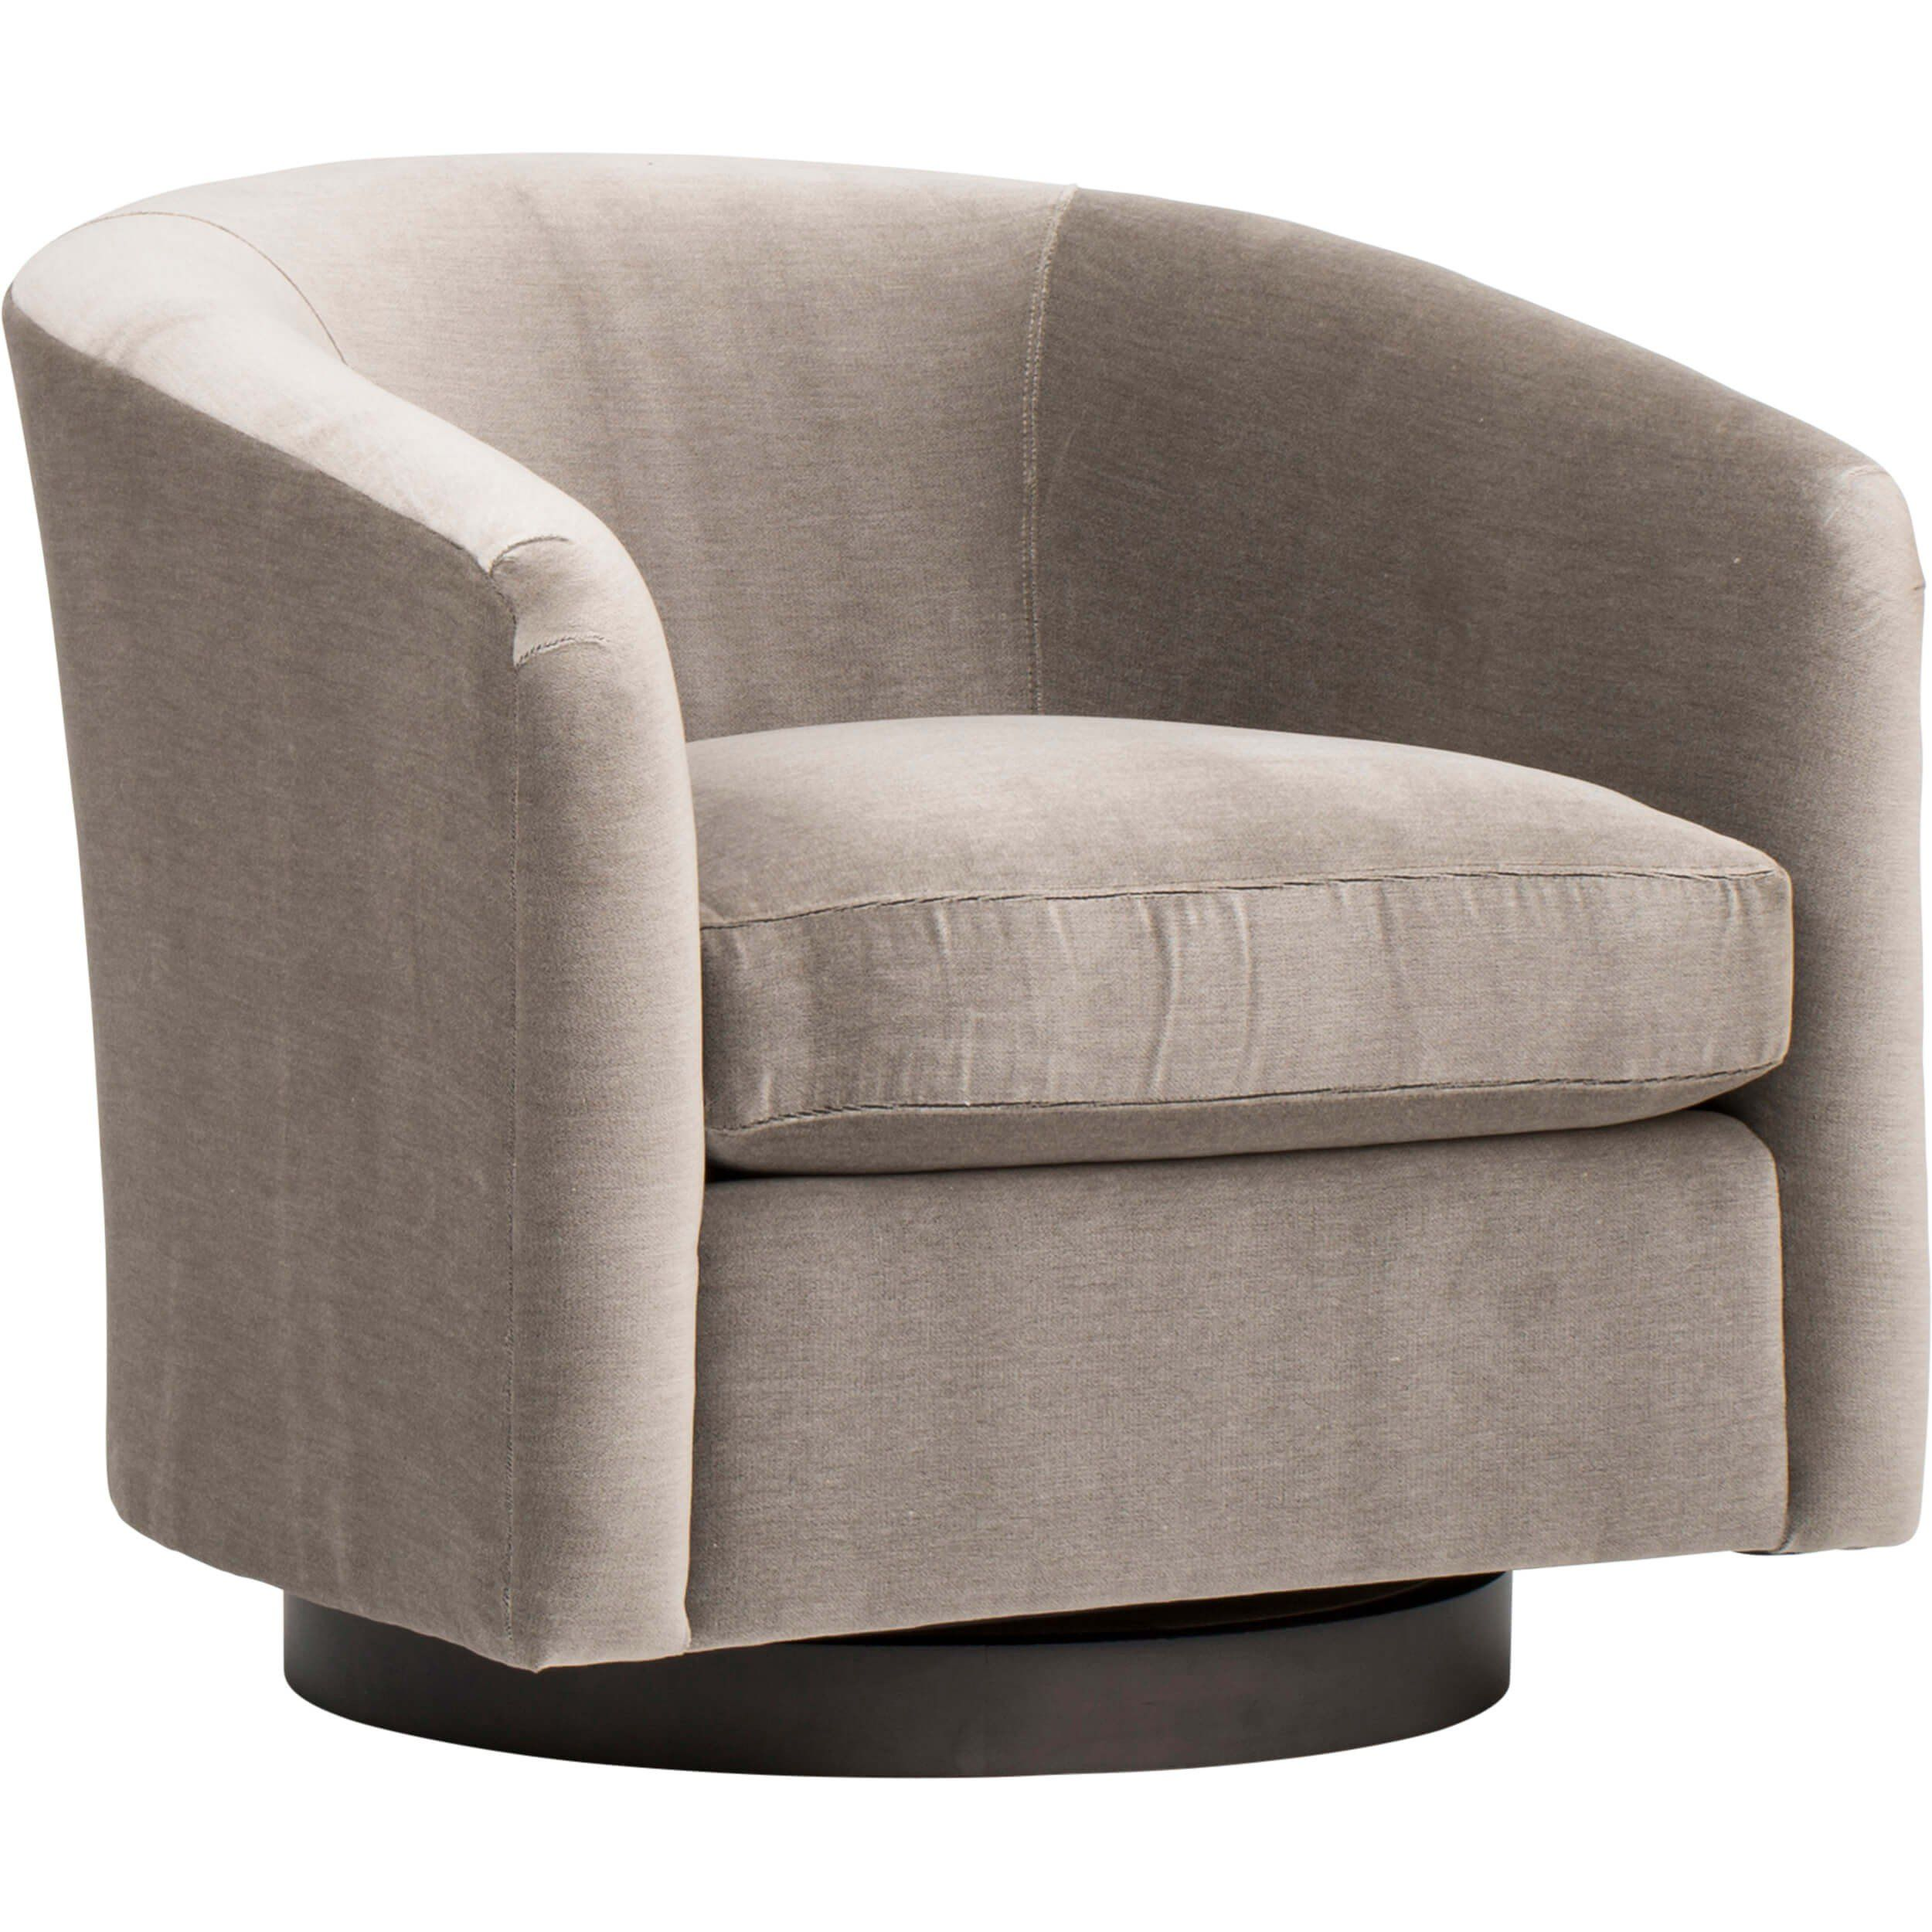 Coltrane Swivel Chair, Vernon Swan Chair, Dining room